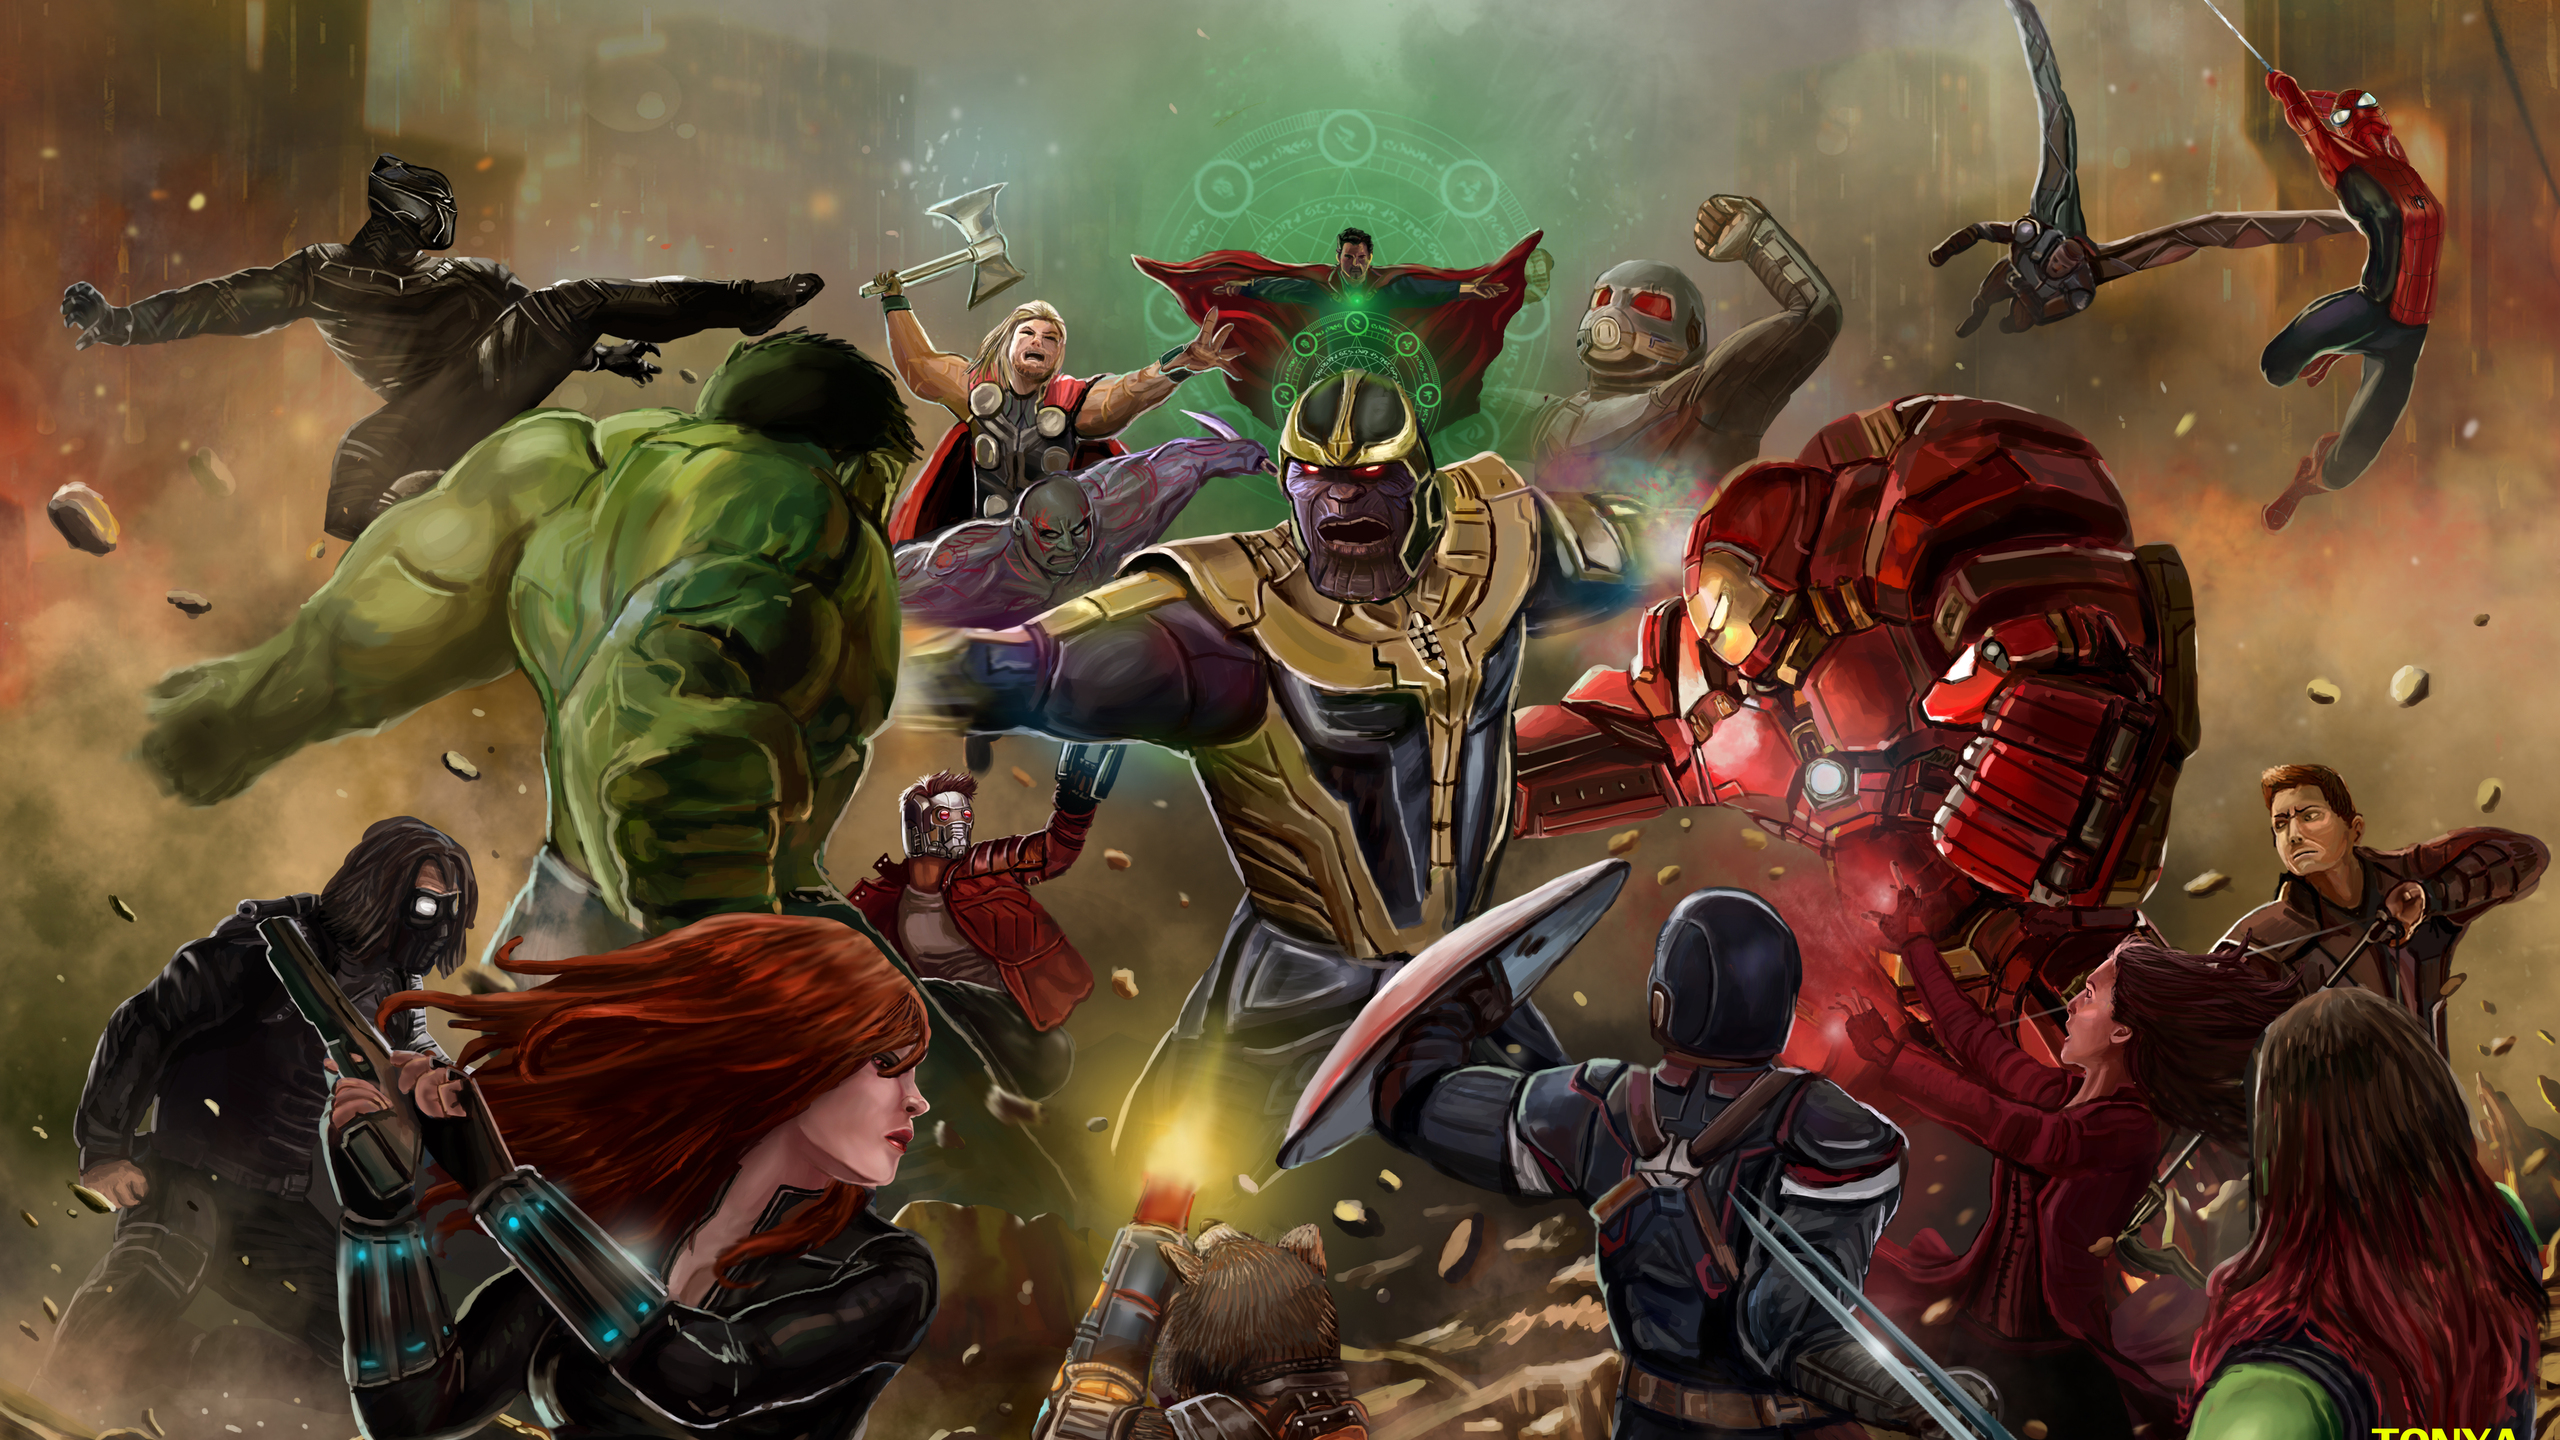 thanos-beating-all-the-avengers-in-avengers-infinity-war-artwork-ys.jpg